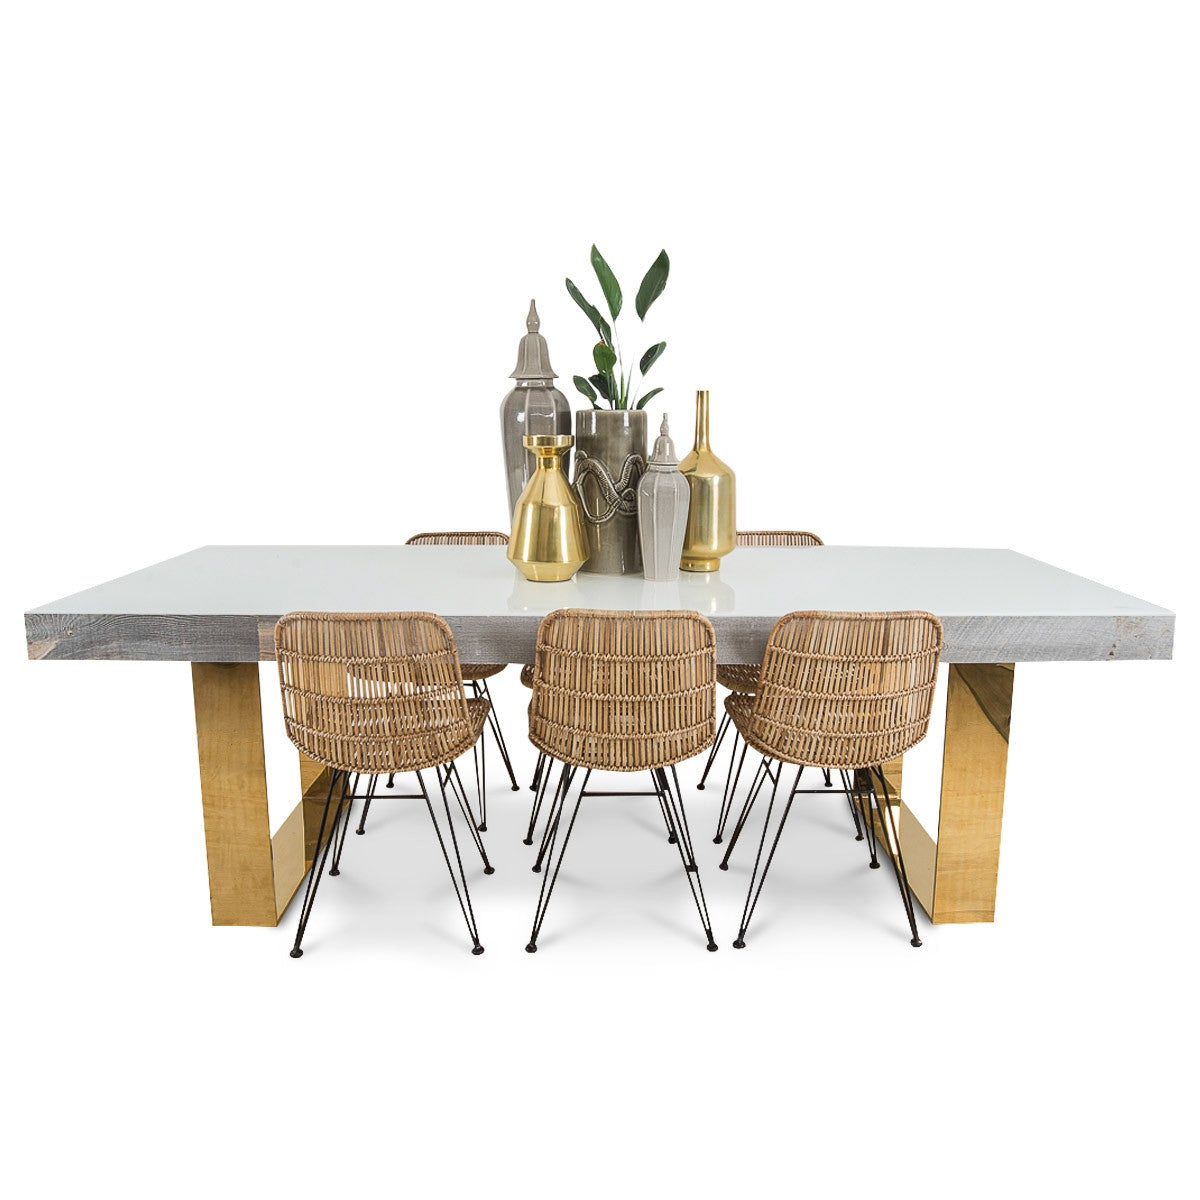 Cody Dining Table with Brass Legs - ModShop1.com